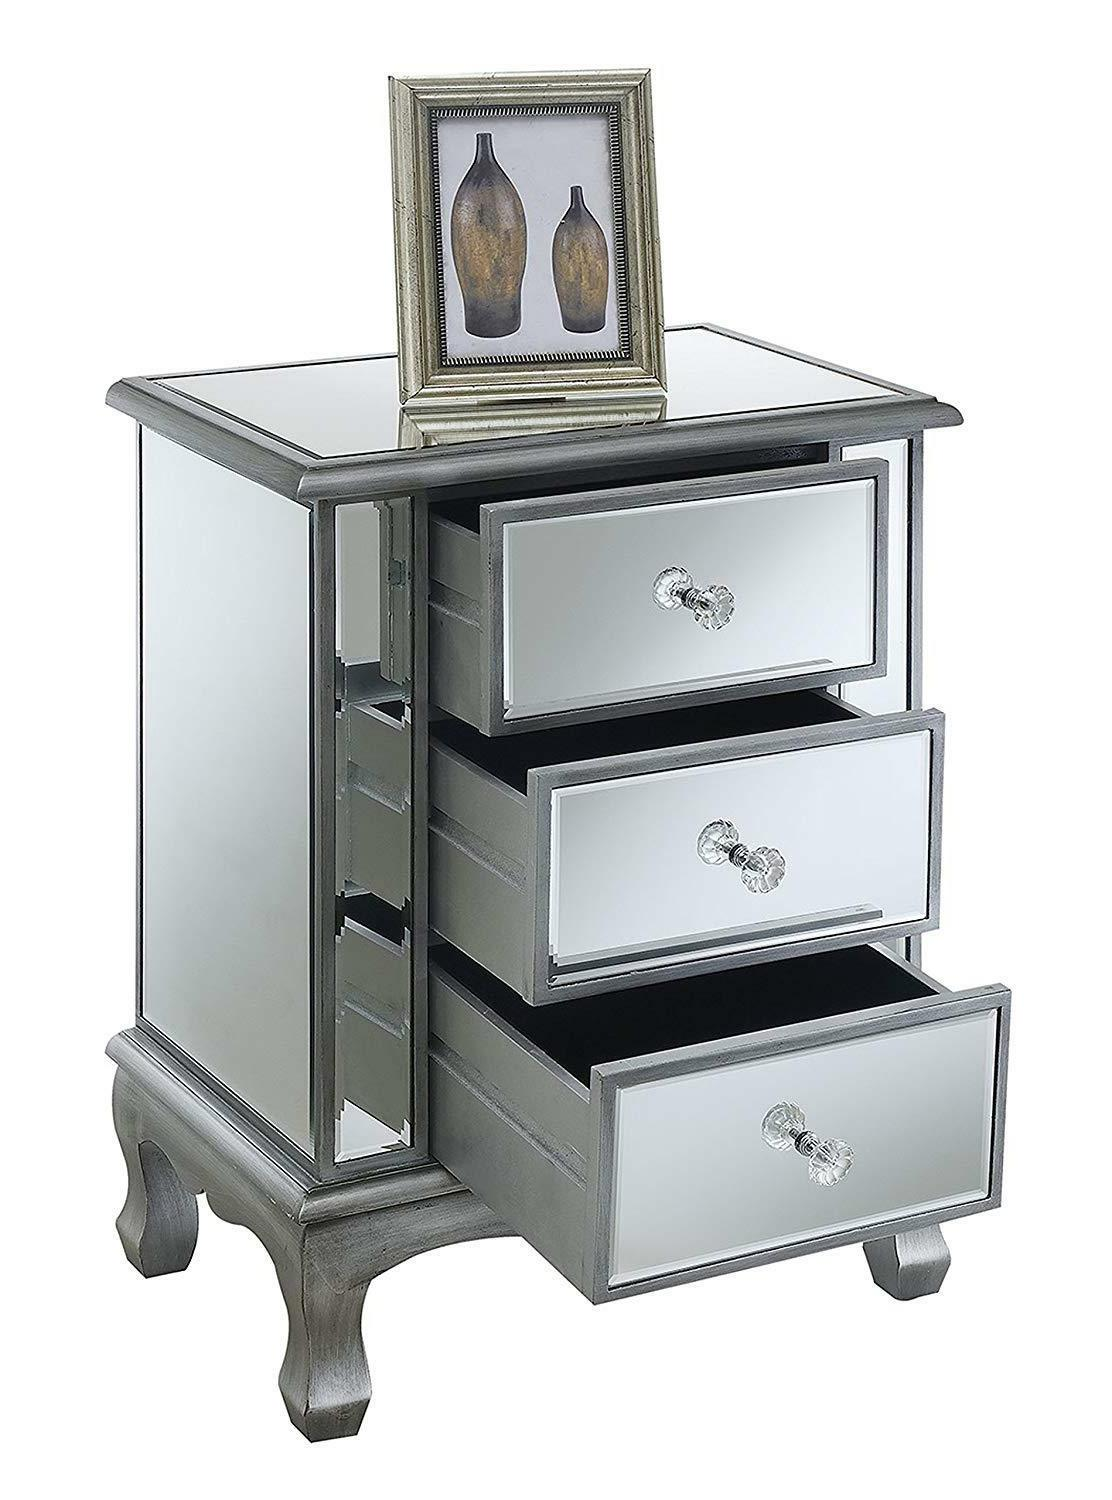 Convenience Coast Collection 3-Drawer Mirrored Table,